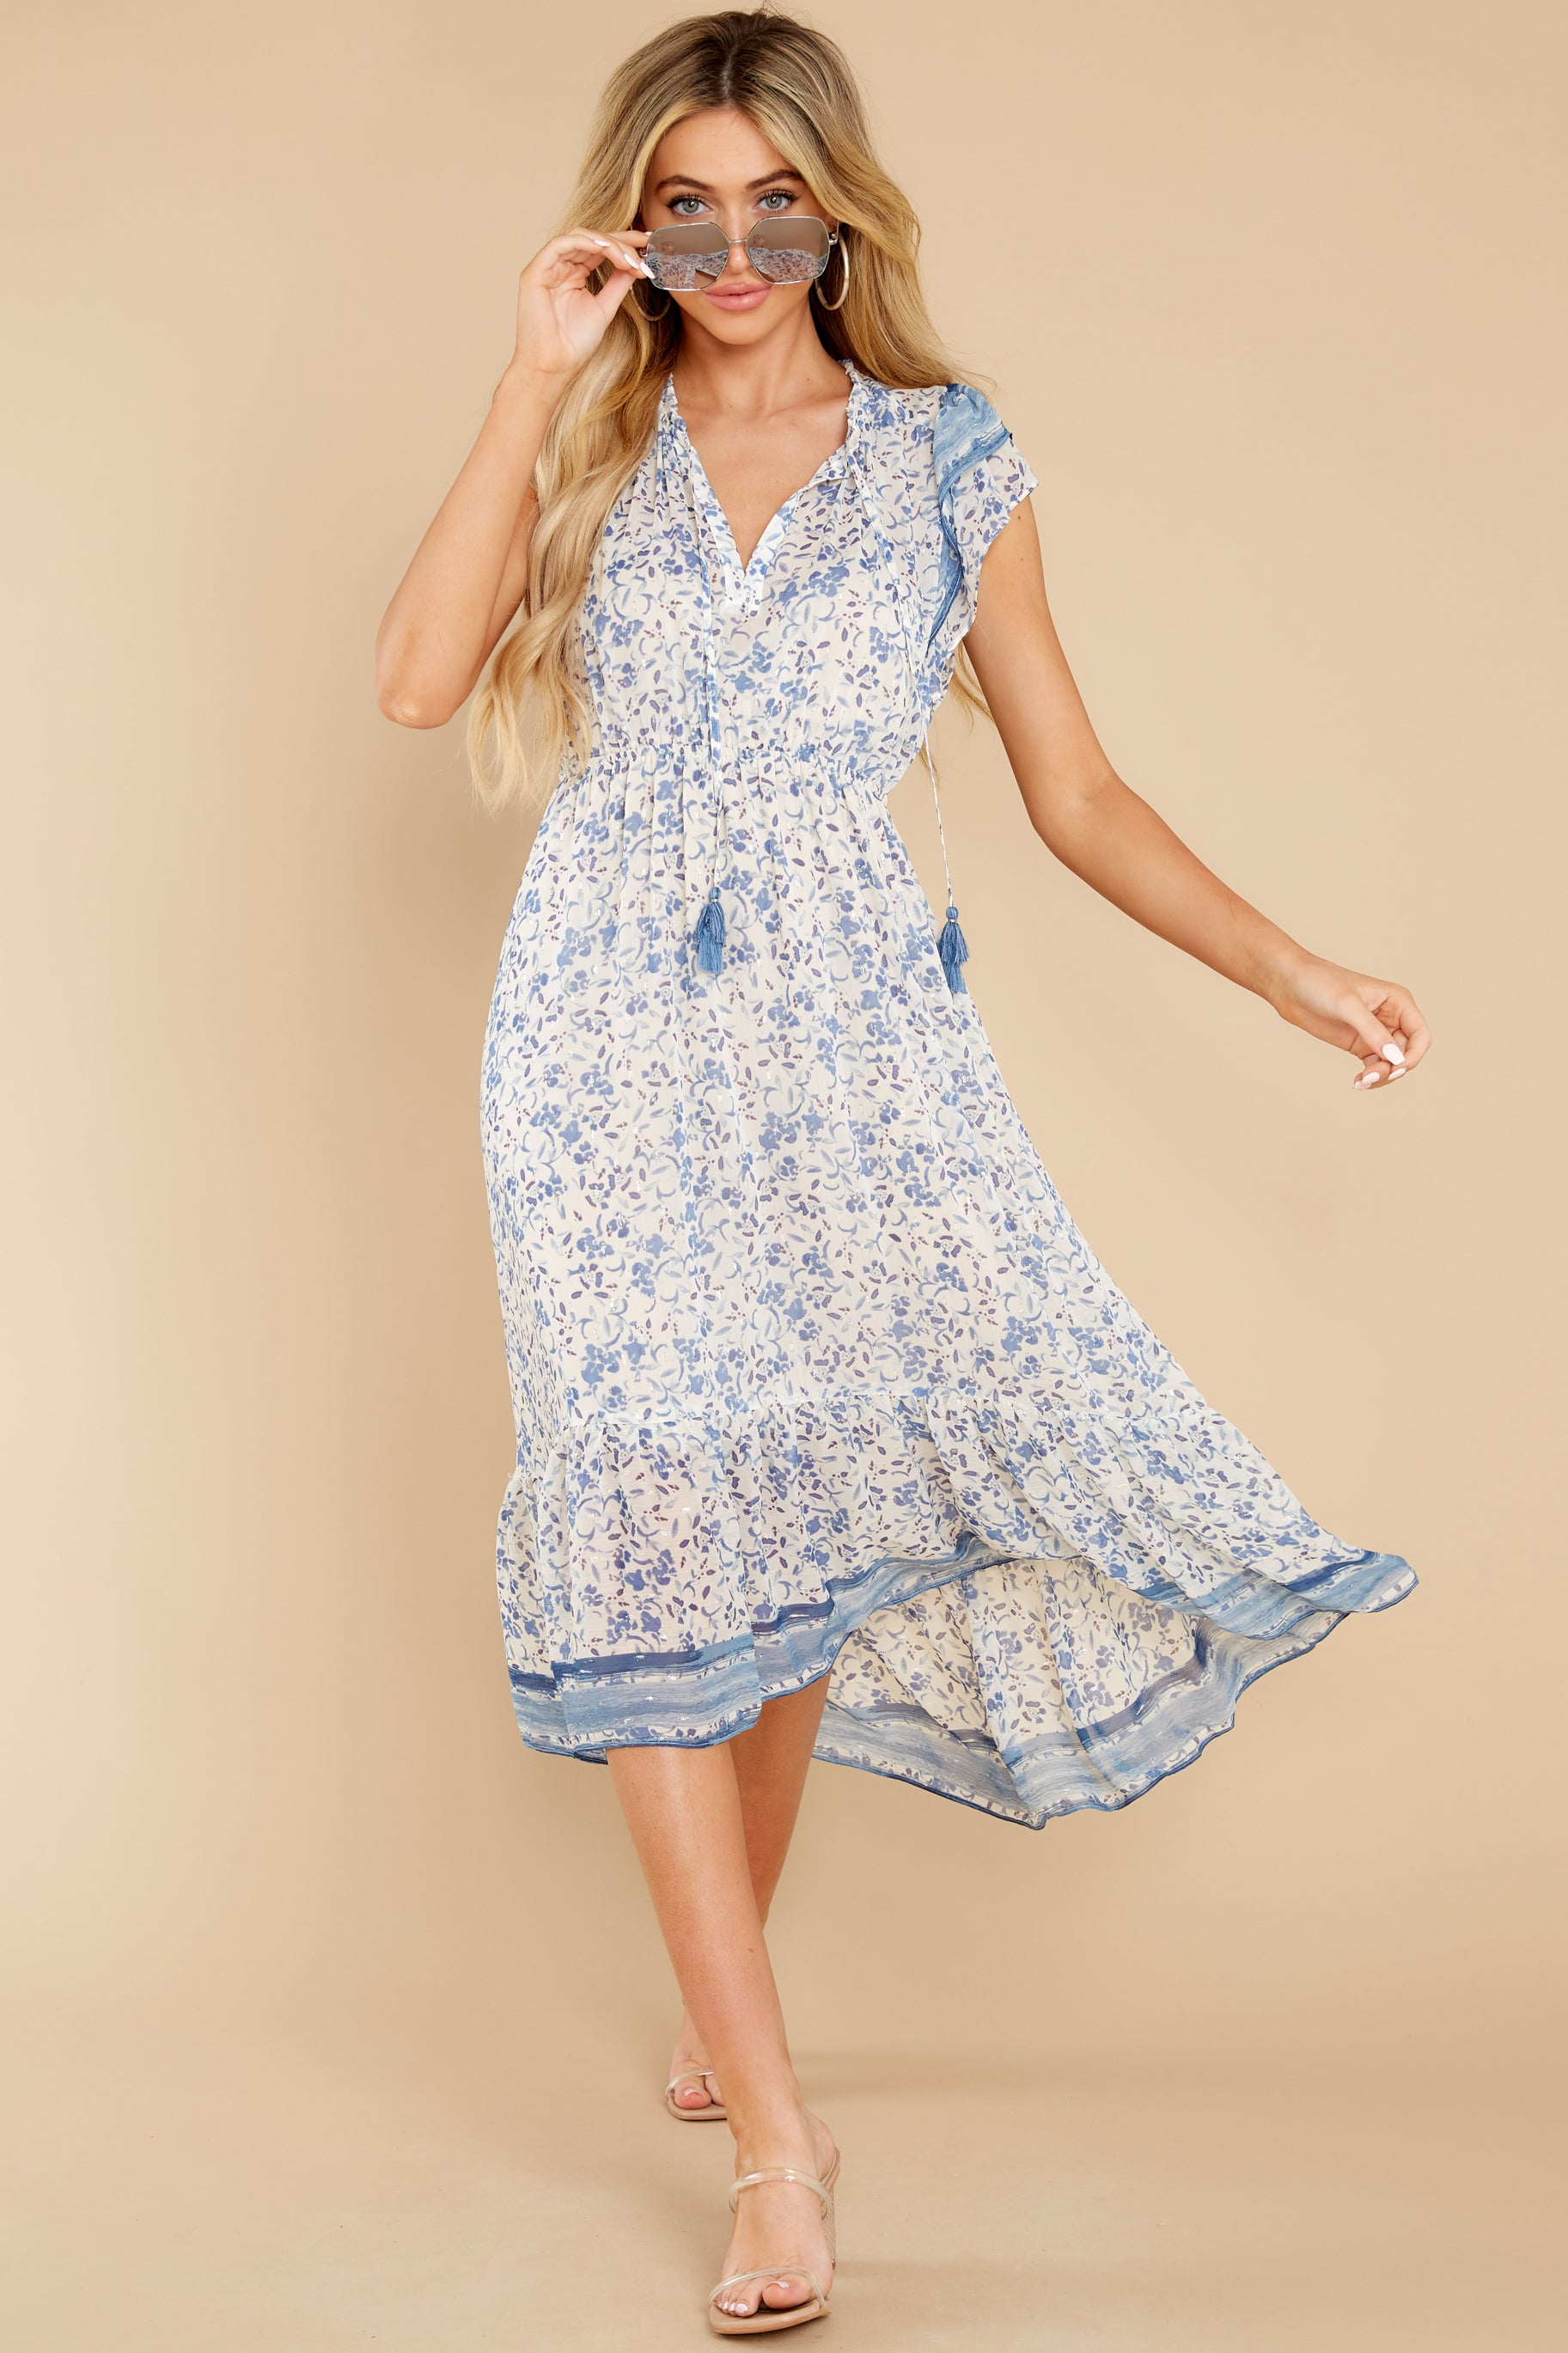 3 Nothing But Us Blue Floral Print Midi Dress at reddress.com